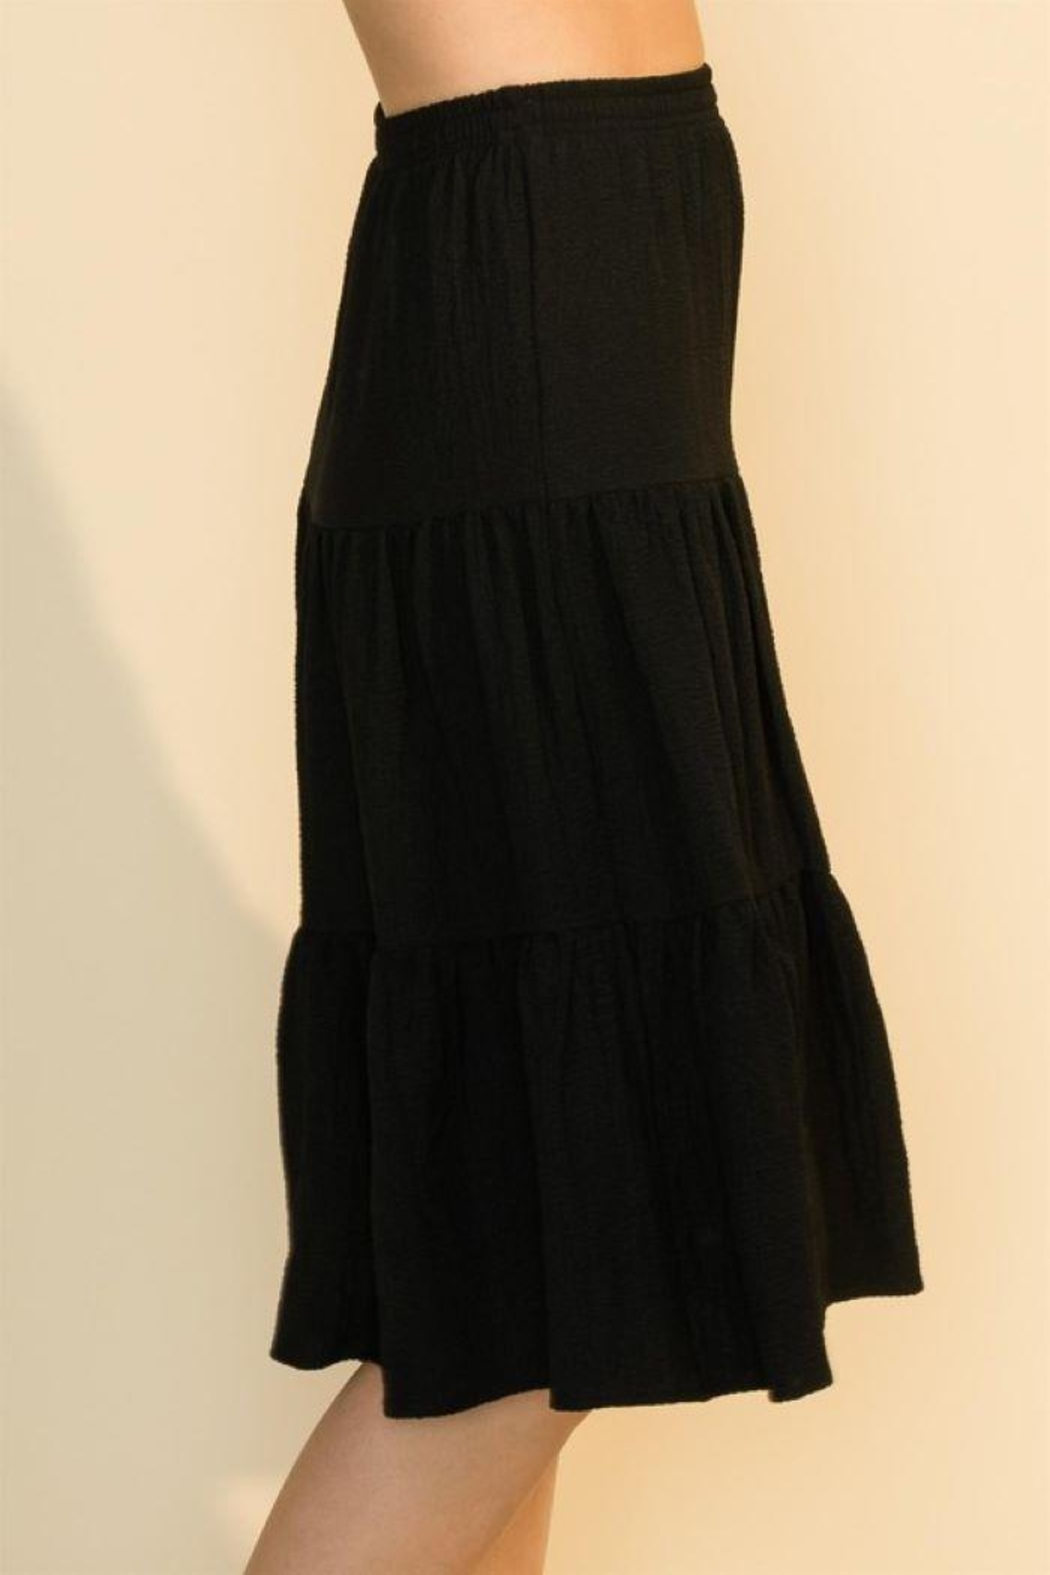 HYFVE Shirring With Ruffle Skirt - Back Cropped Image